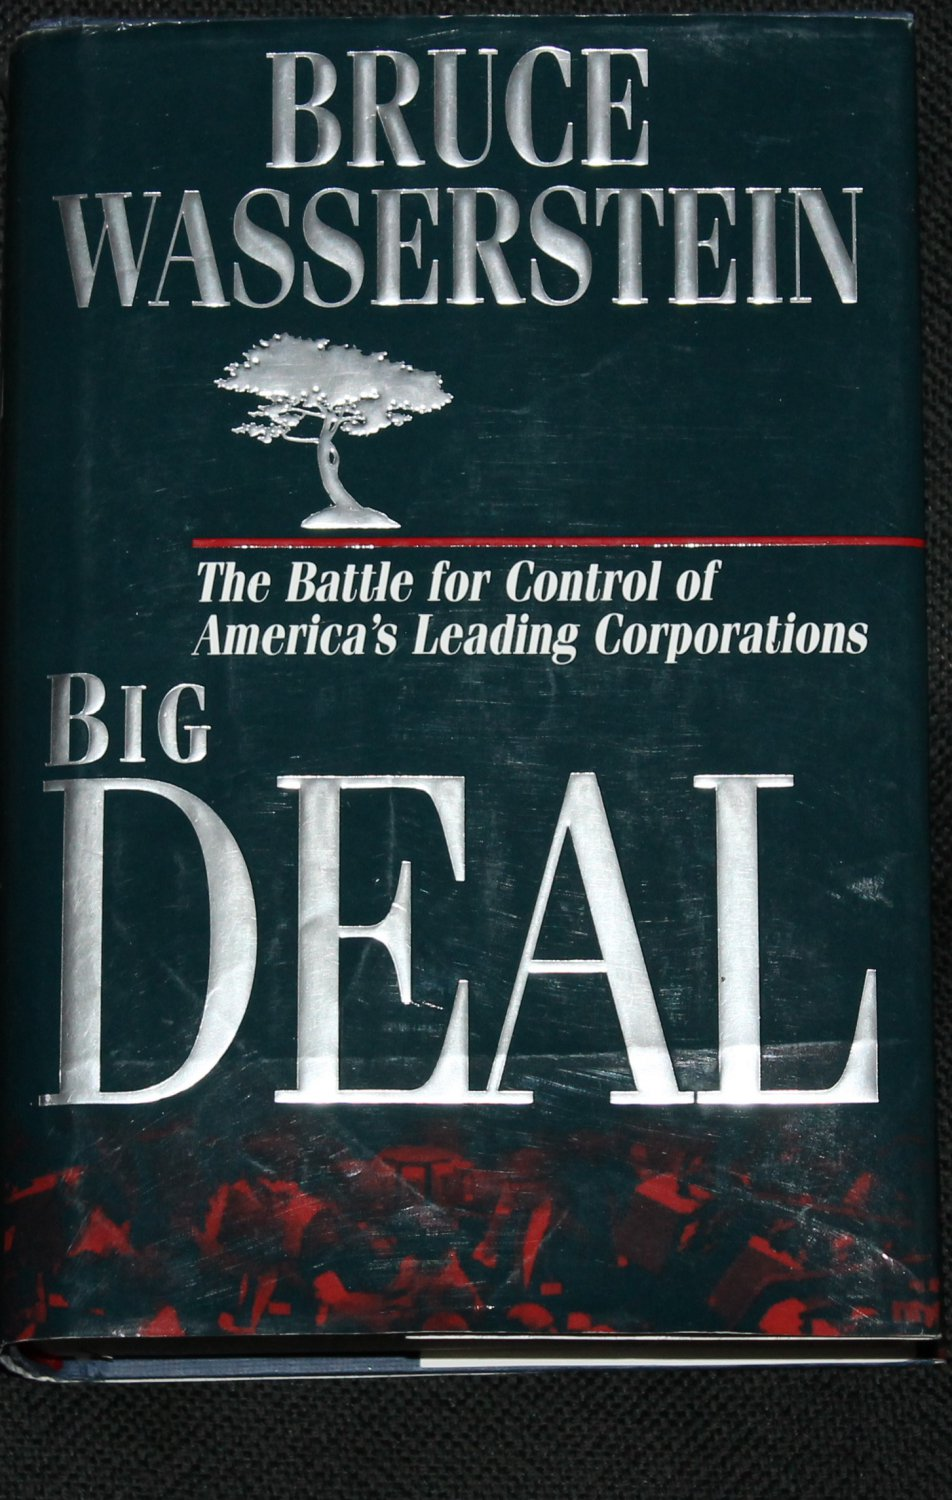 The Big Deal hardcover book by Bruce Wasserstein